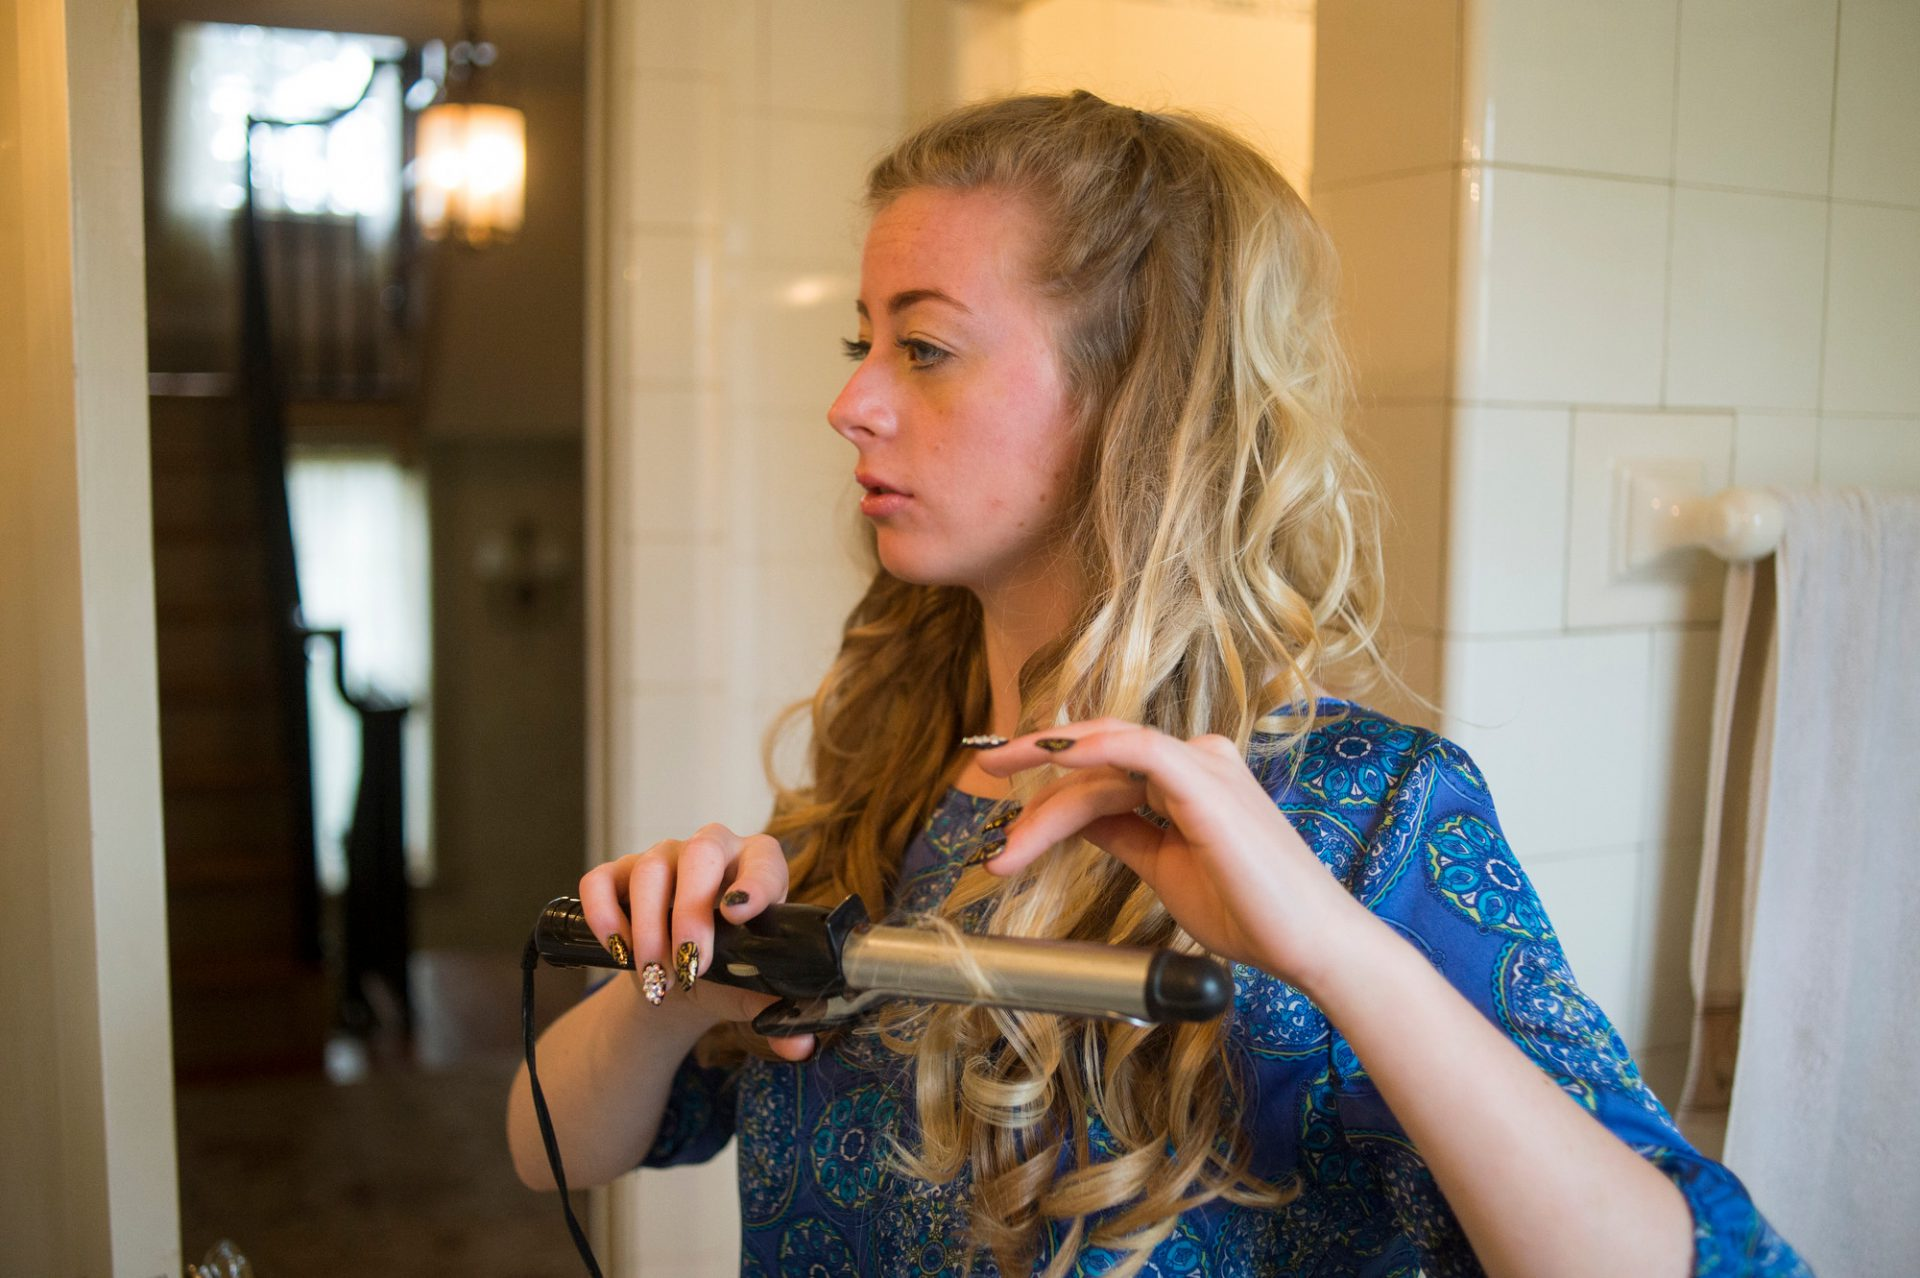 Photo: A teenage girl, gets ready for her senior prom.